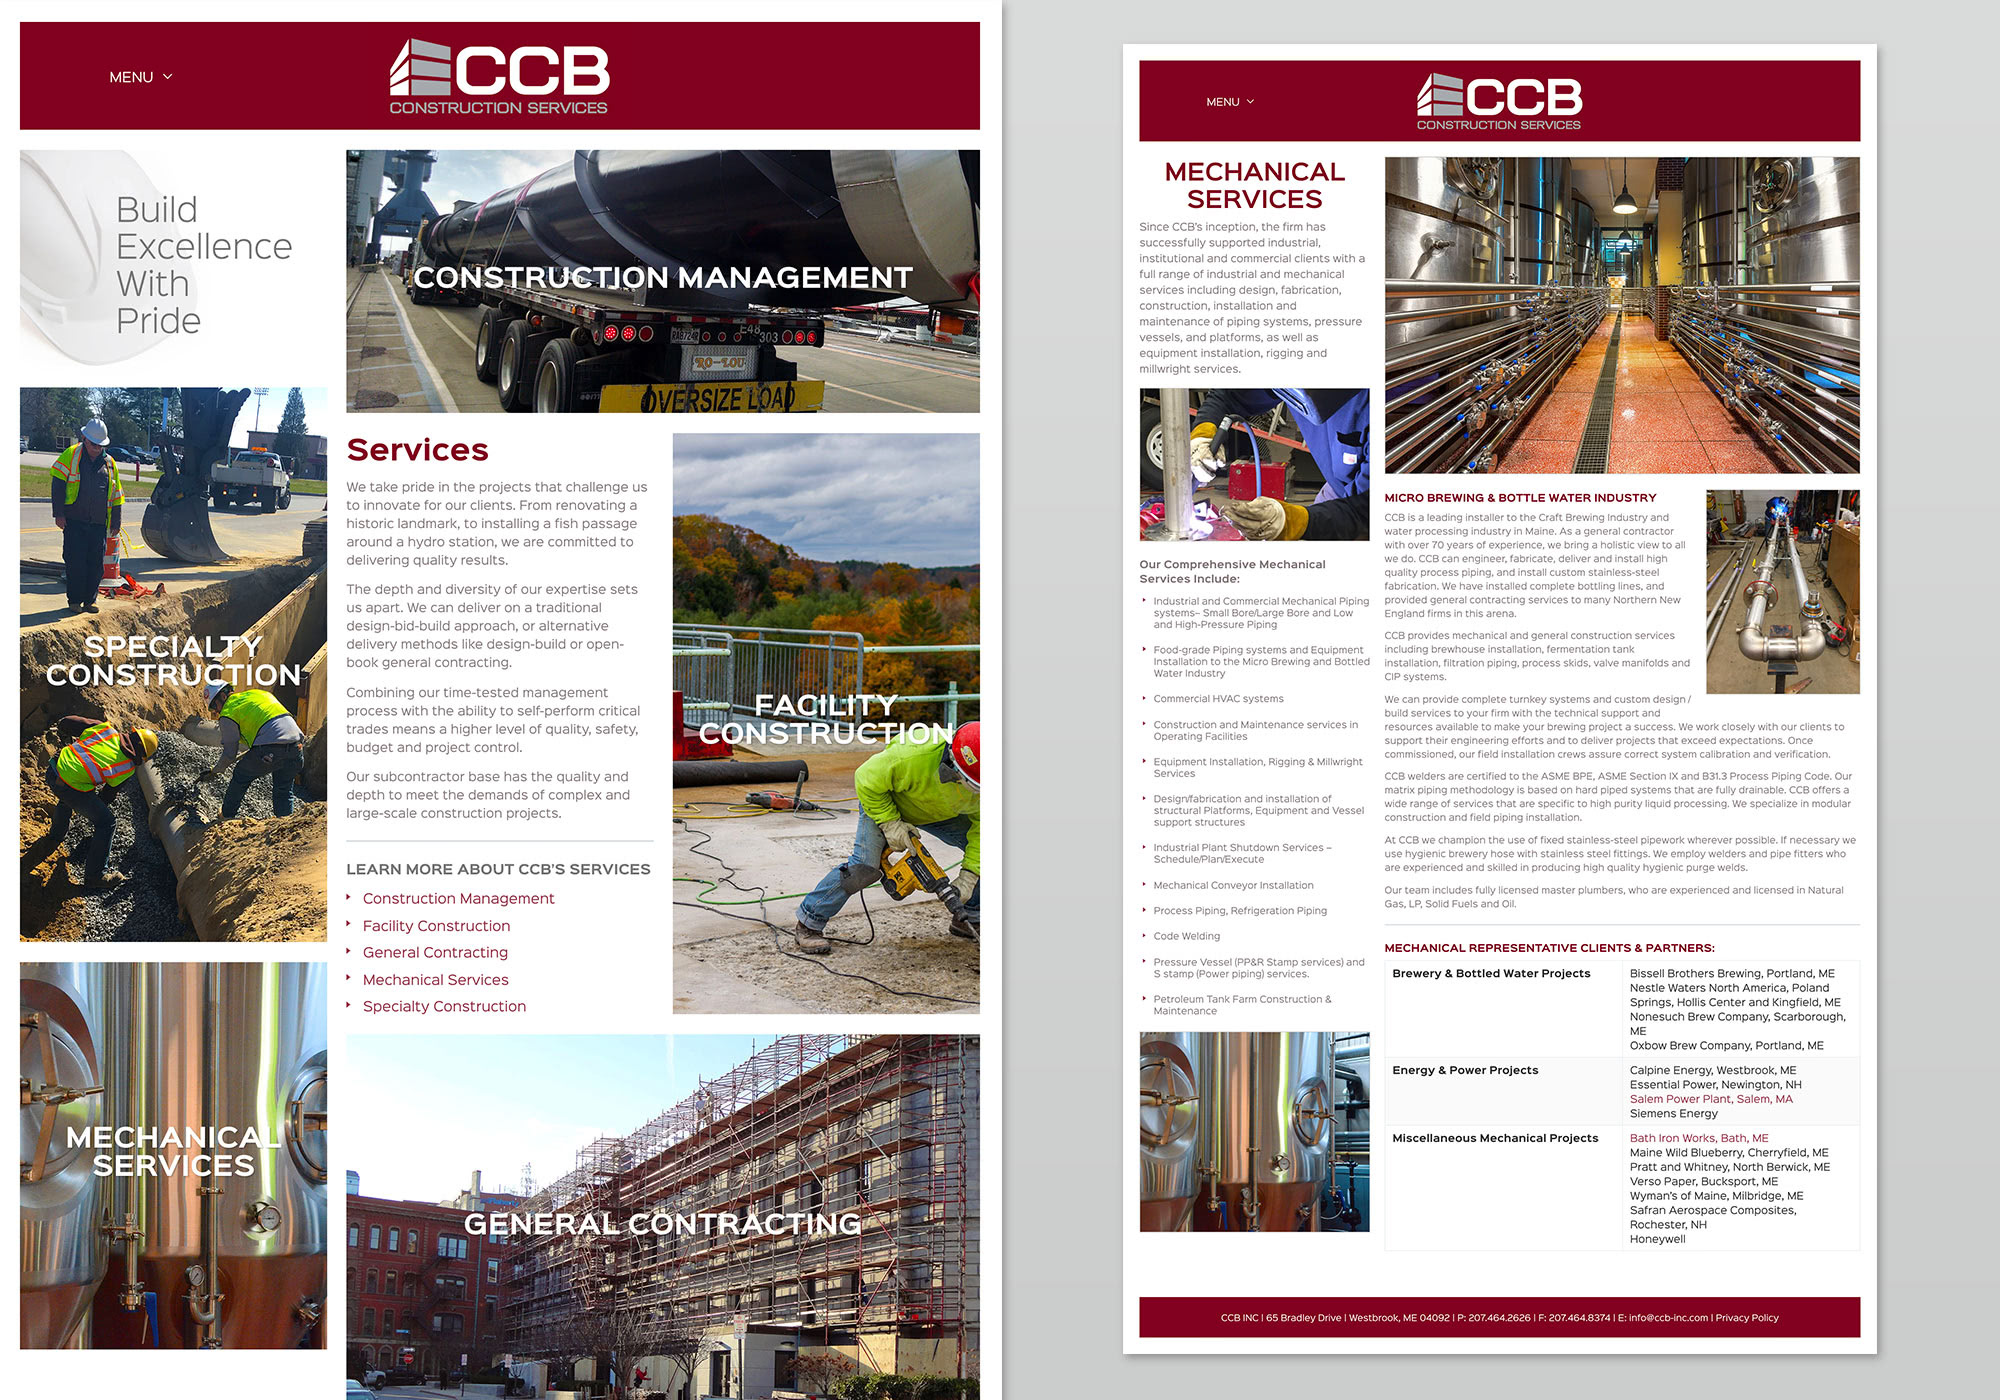 A screenshots from the CCB Construction Services Inc. website showing some of the Service pages we built. Designed and developed by Maine website design company, SlickFish Studios